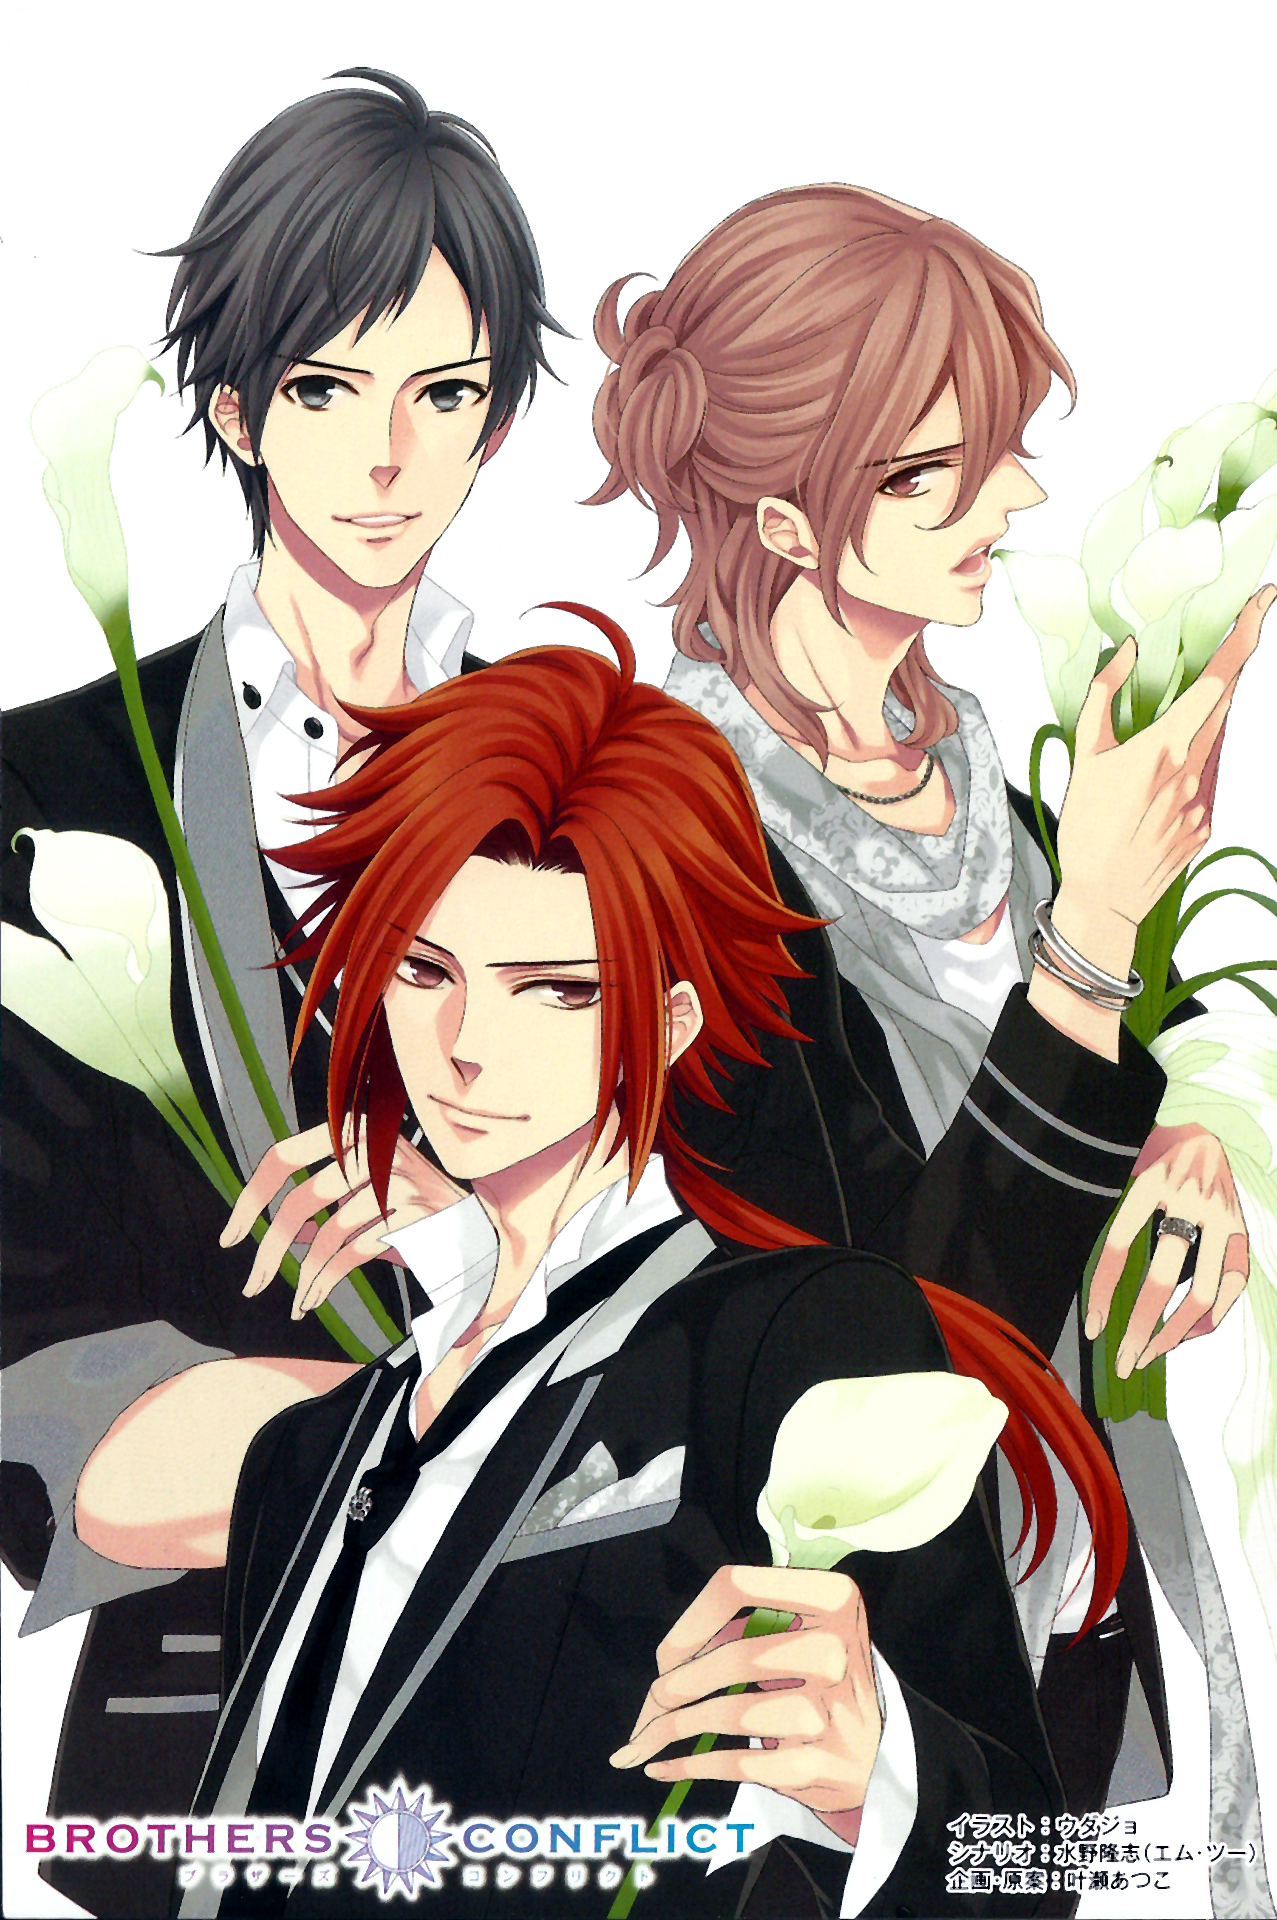 Image - Brothers.Conflict.full.1572339.jpg  Brothers Conflict Wiki  Fandom powered by Wikia